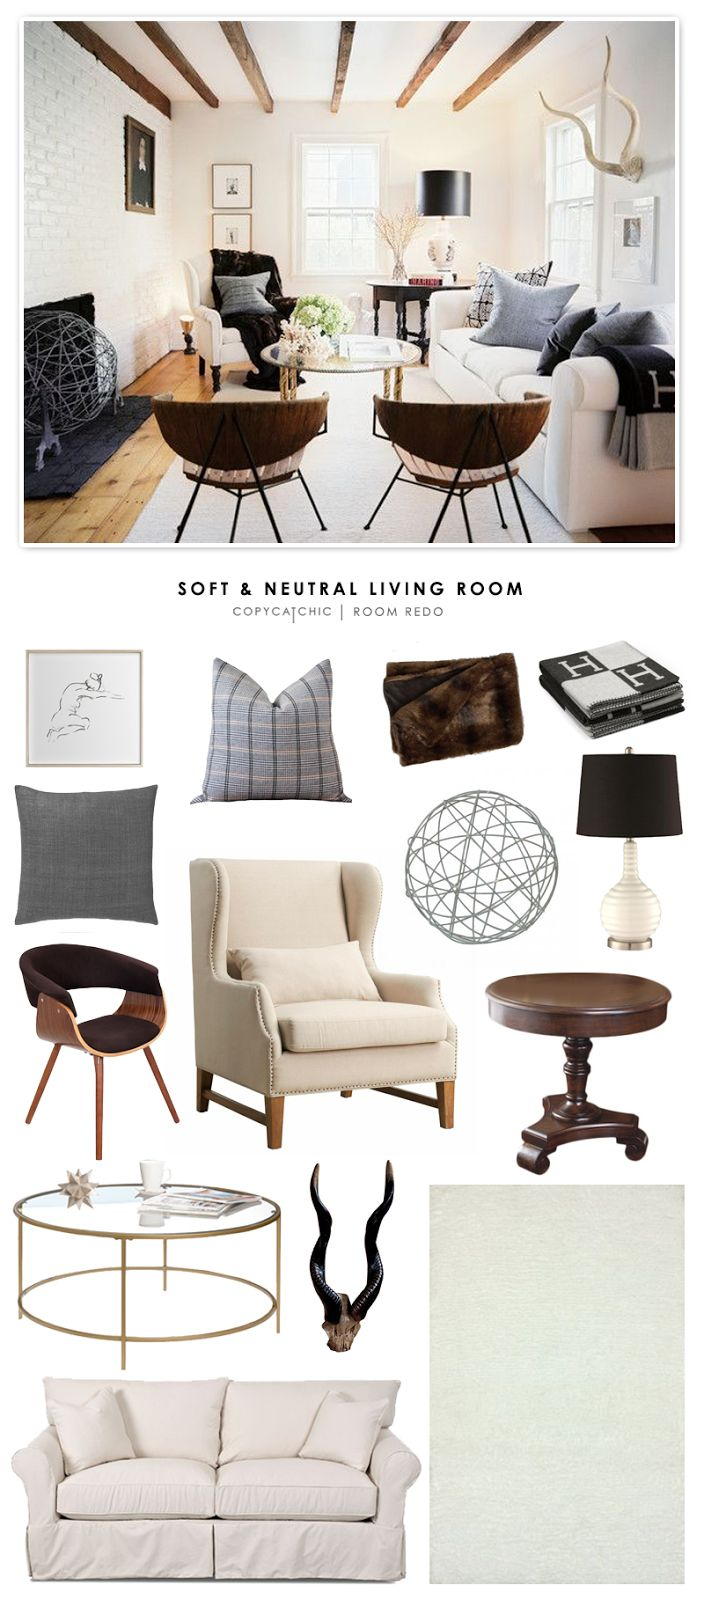 Copy Cat Chic Room Redo | Soft & Neutral Living Room